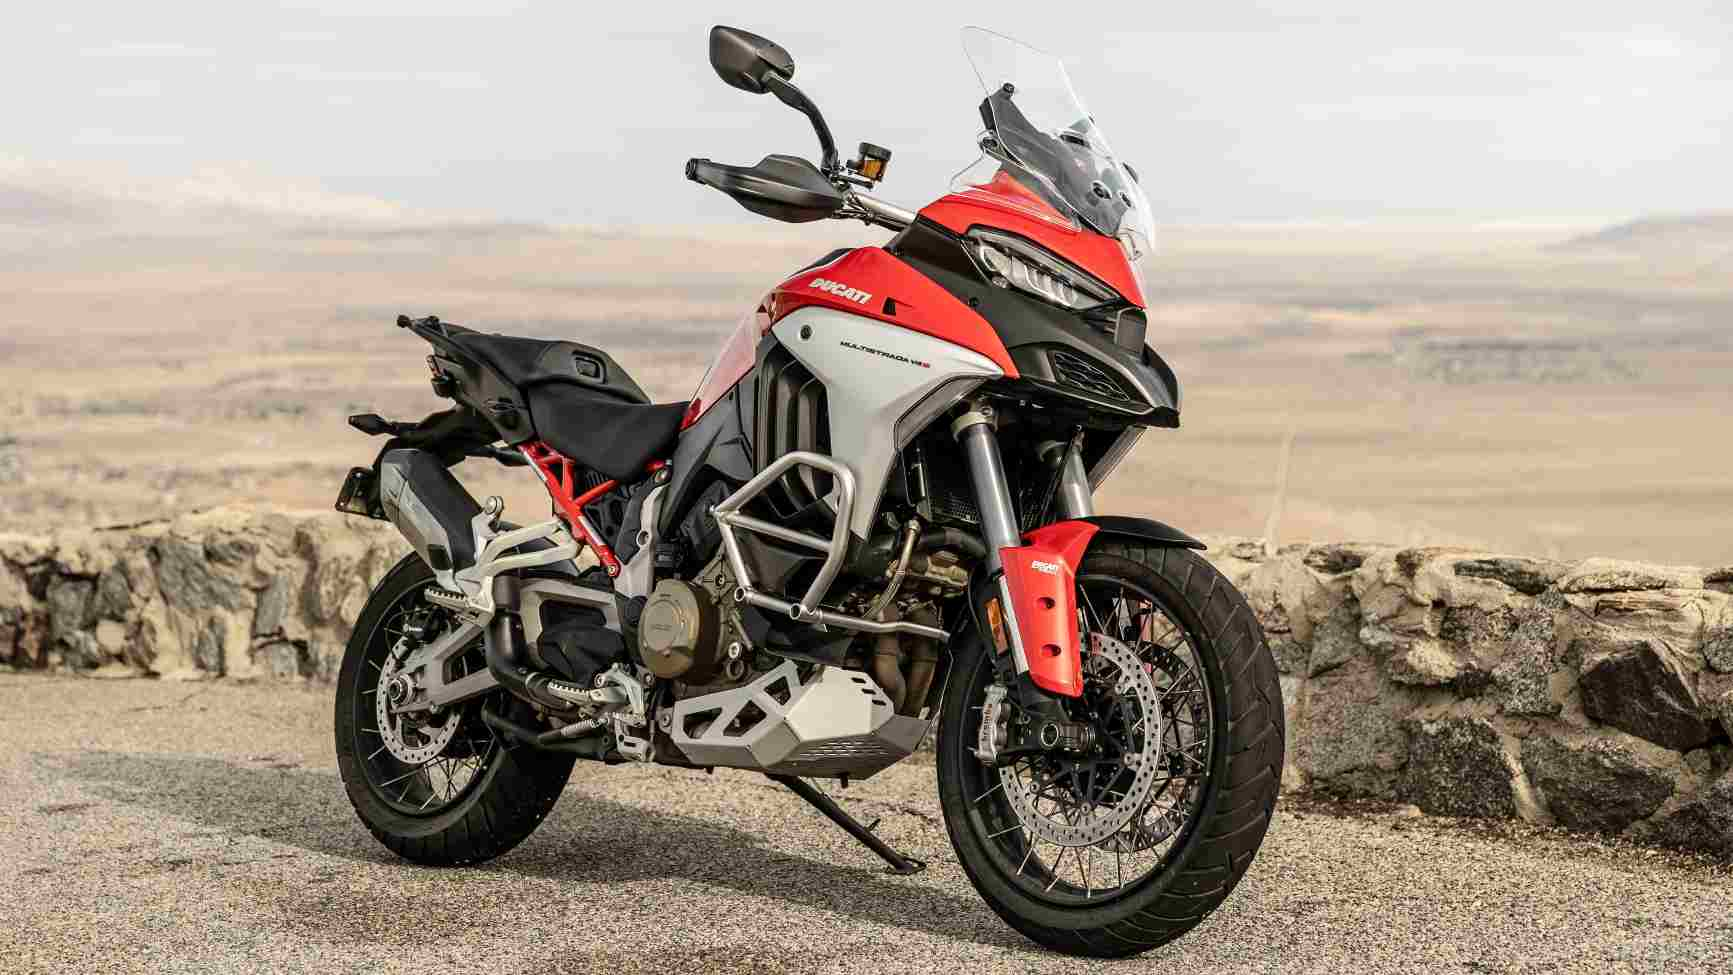 The Ducati Multistrada V4 is the first motorcycle to feature a front and rear radar driver assistance system.  Photo: Ducati